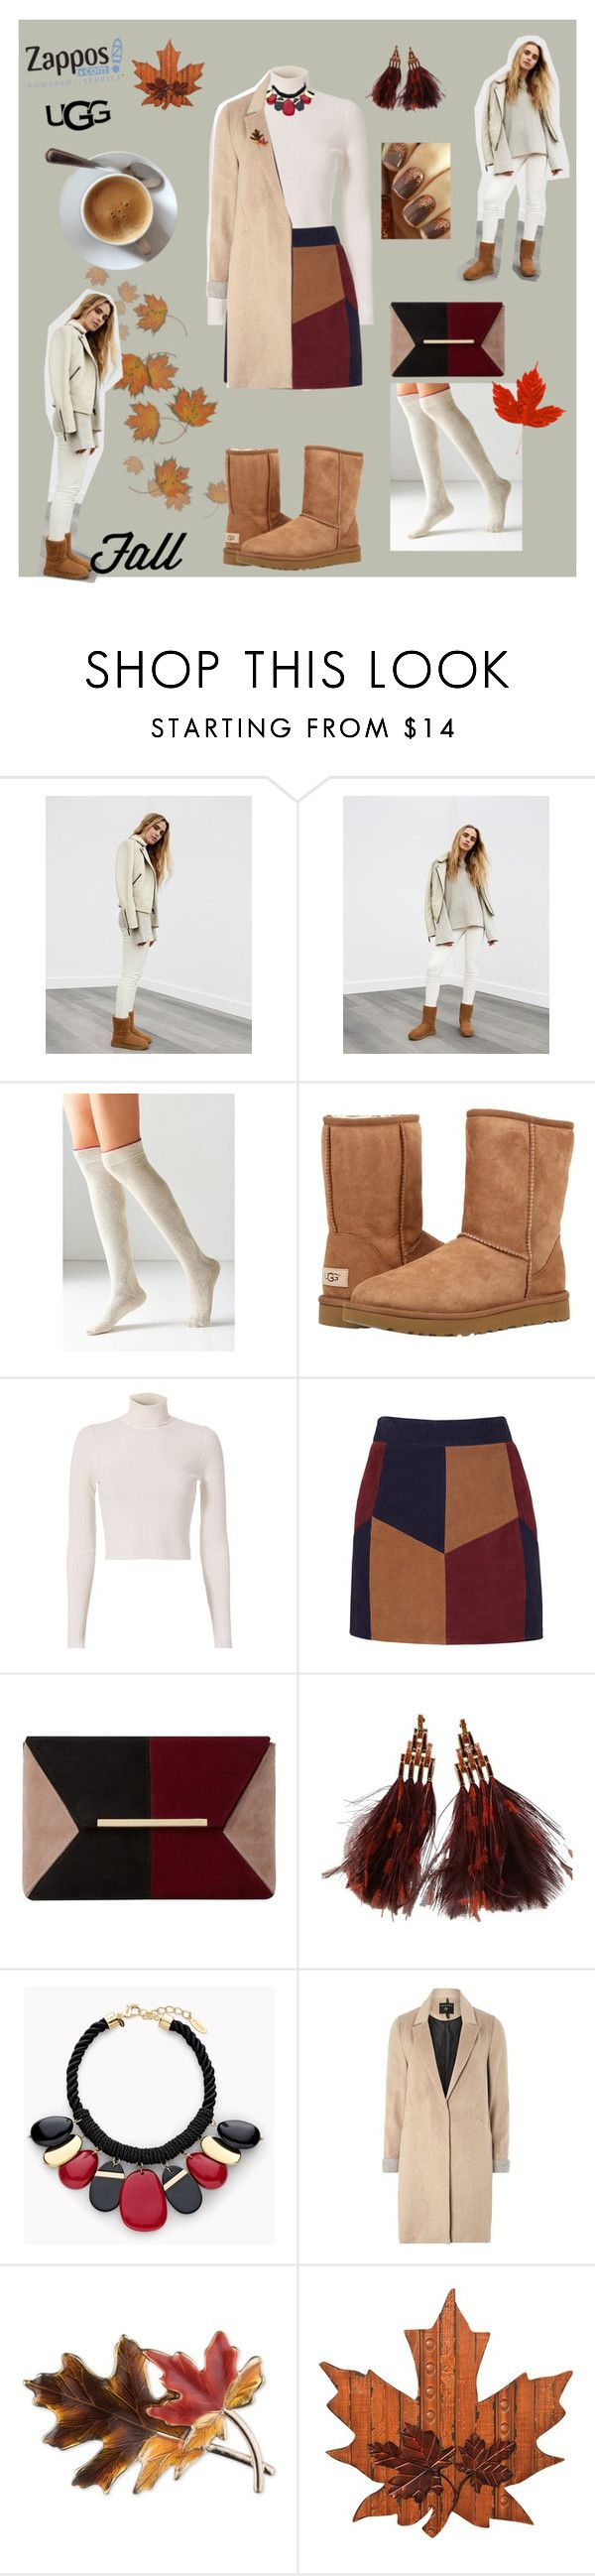 """The Icon Perfected: UGG Classic II Contest Entry"" by salmafernandez ❤ liked on Polyvore featuring UGG, Out From Under, UGG Australia, A.L.C., La Marque, Dune, Louis Vuitton, Chico's, mel and Anne Klein"